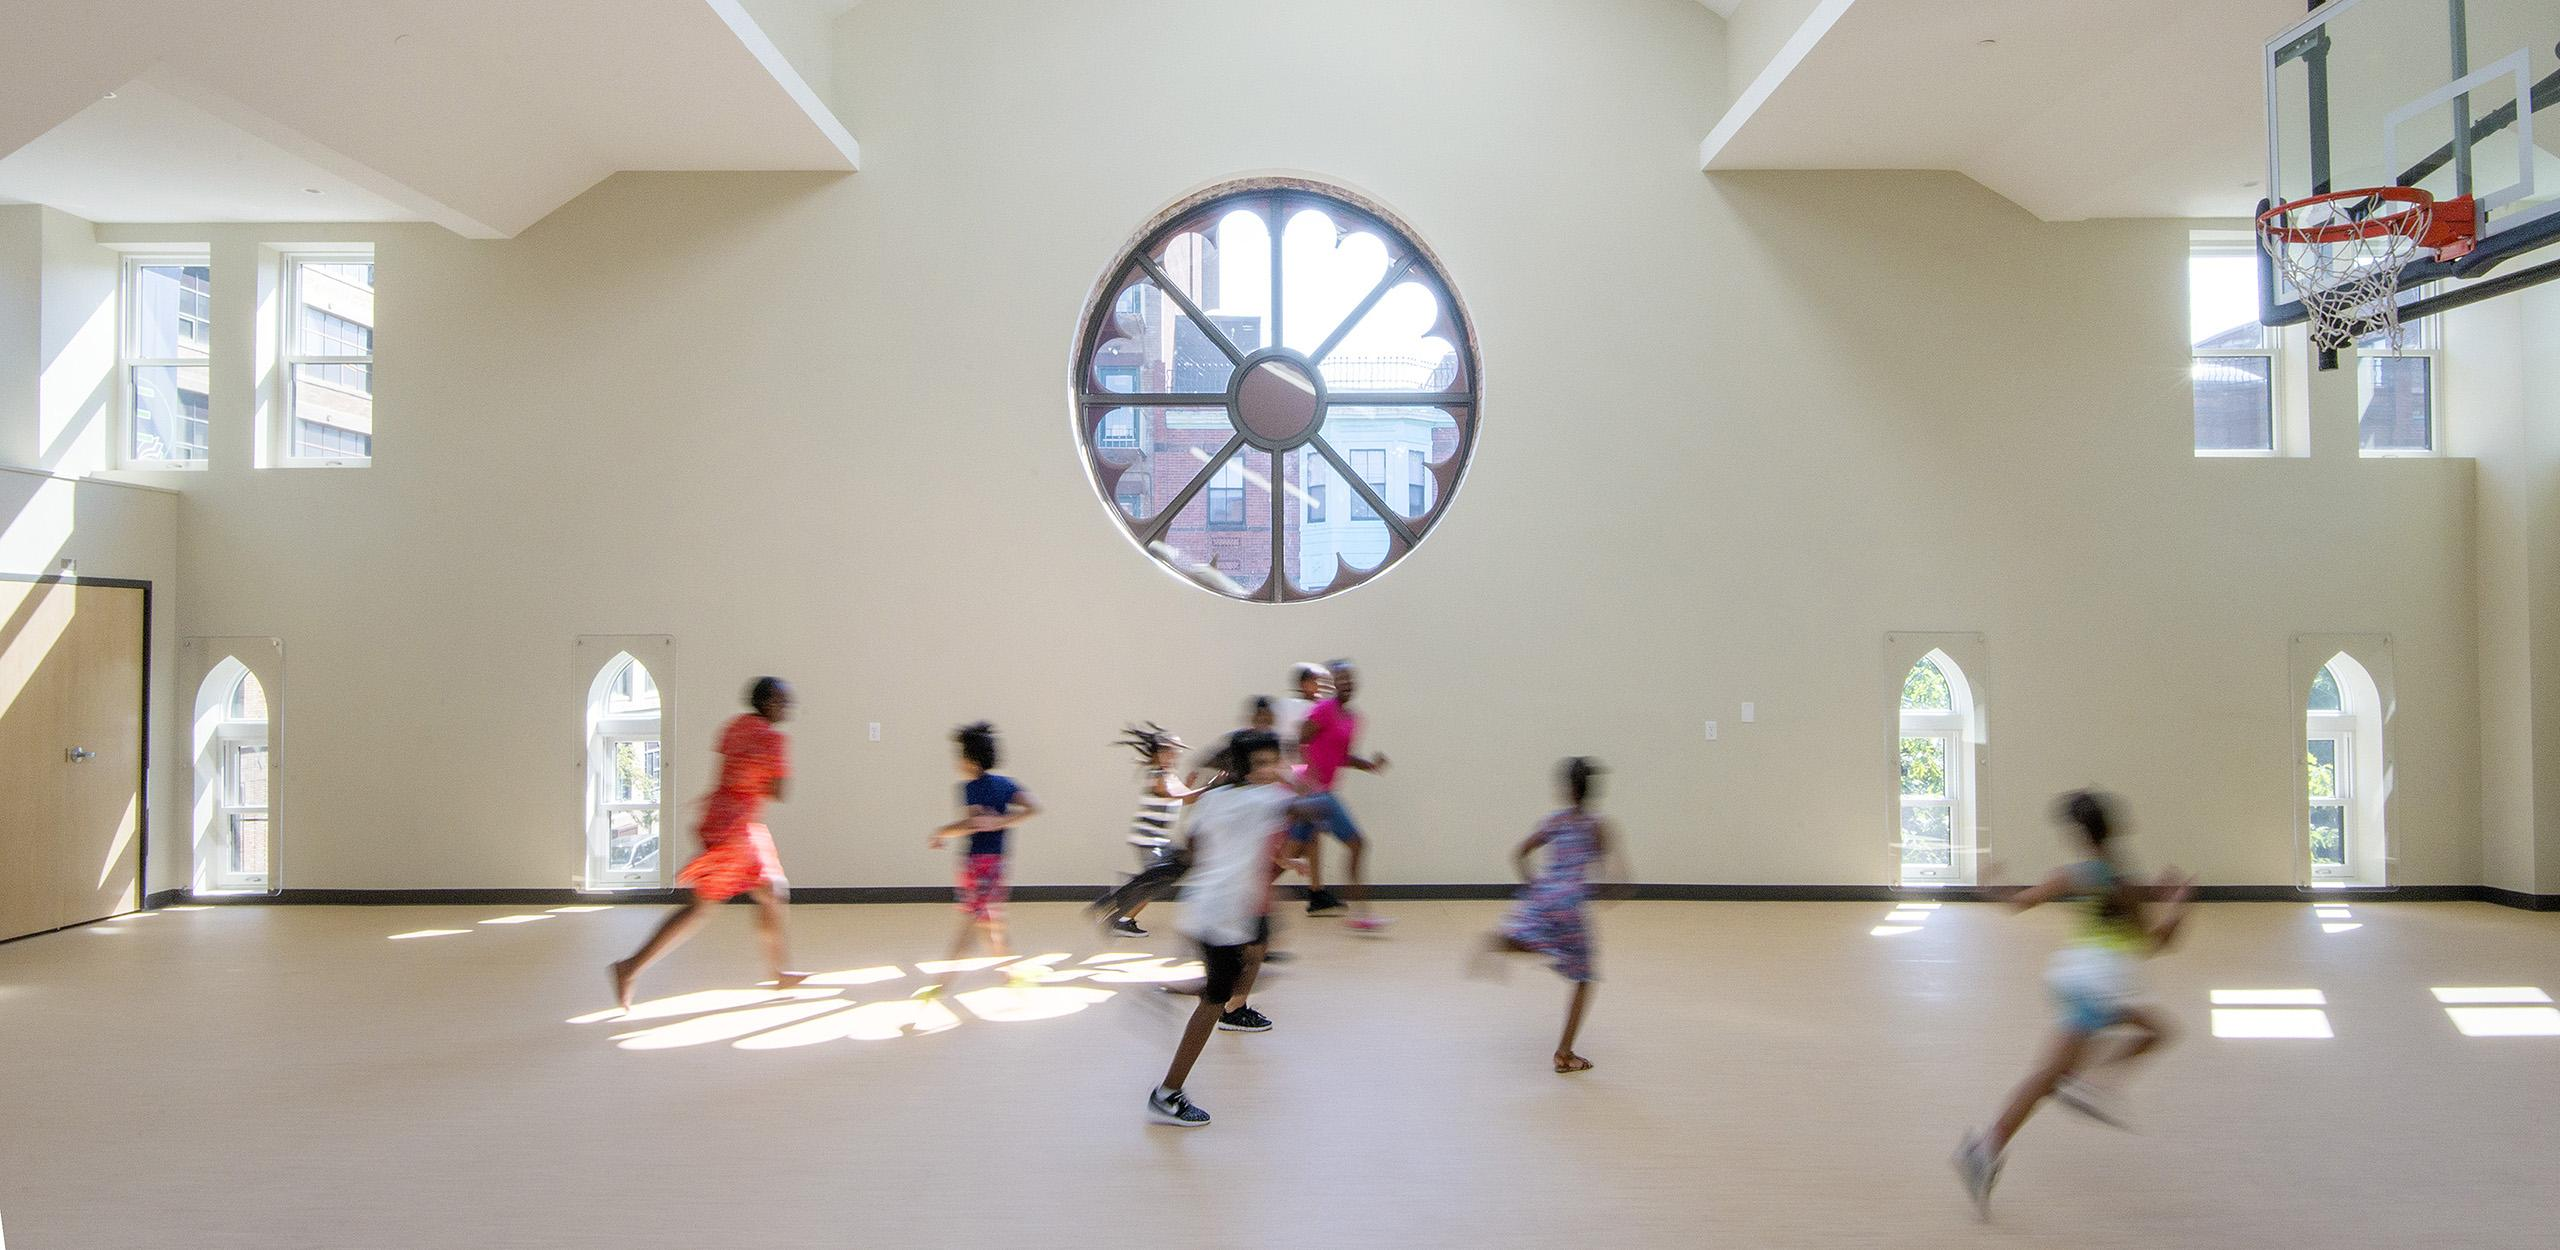 Adaptive reuse of an historic church into childcare space/gymnasium